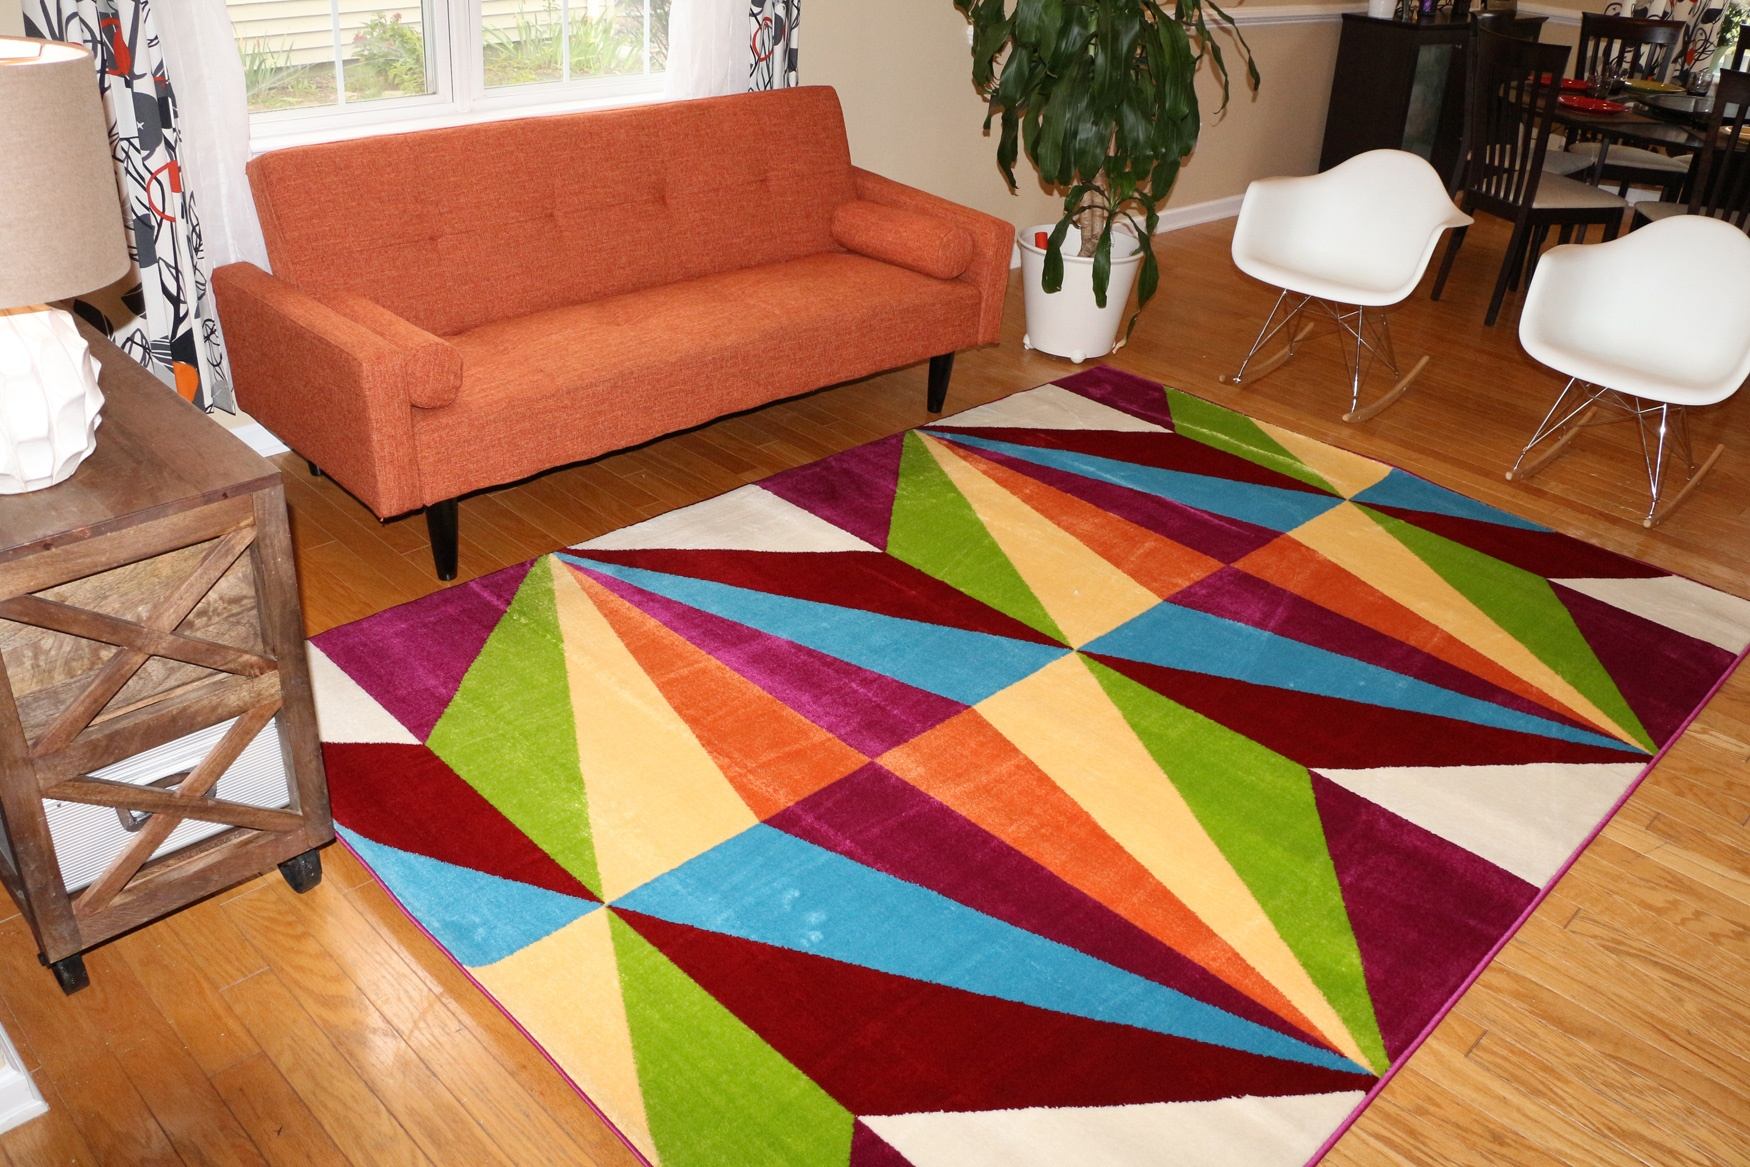 captivating-discount-area-rug-rugs-direct-with-colorful-design-and-sofa